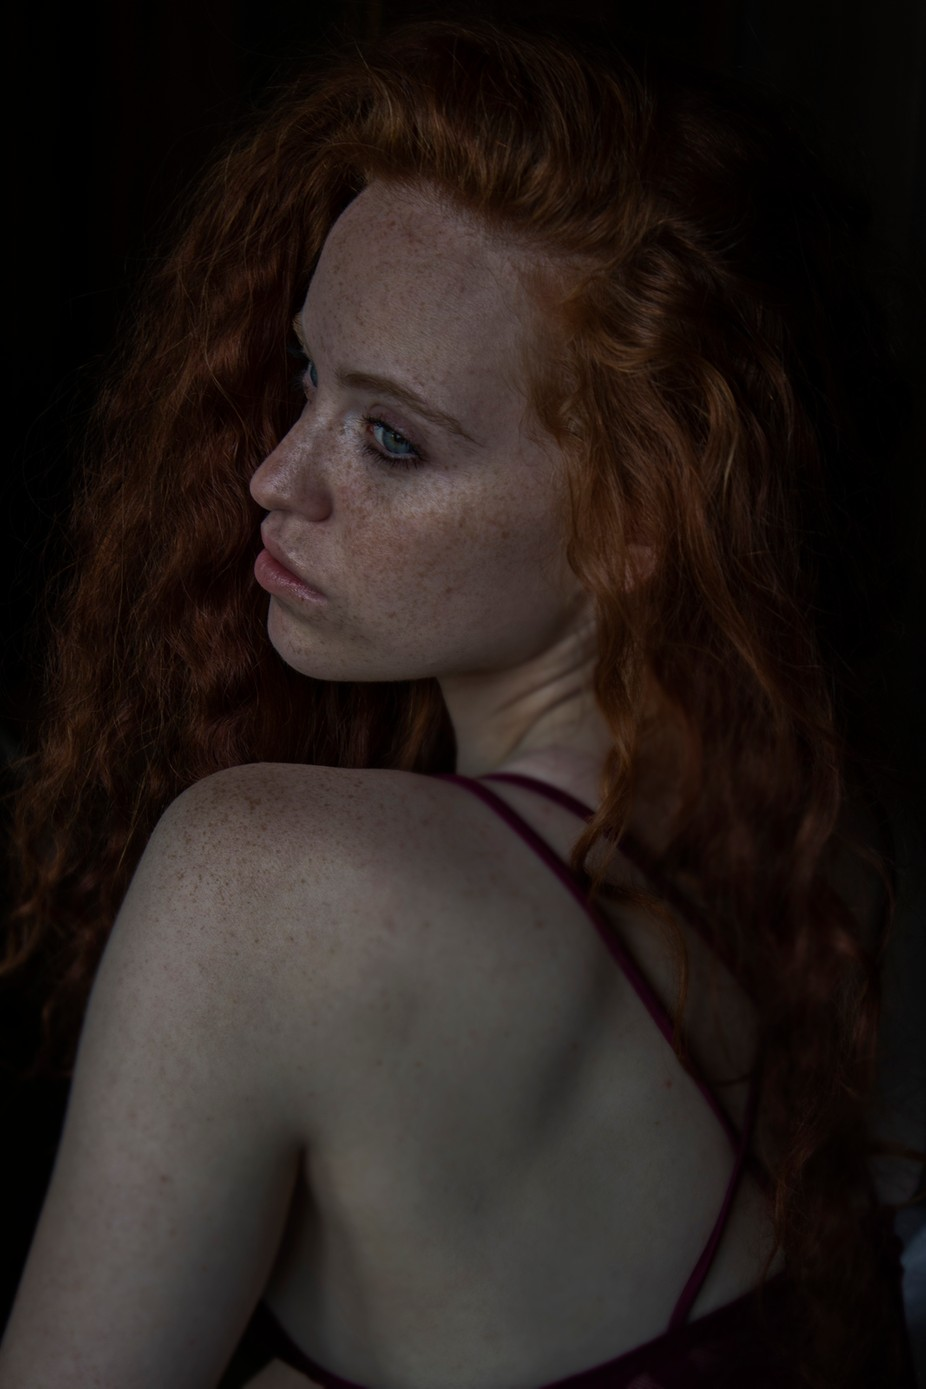 Freckled  by liaekaiteudo - Image Of The Month Photo Contest Vol 44